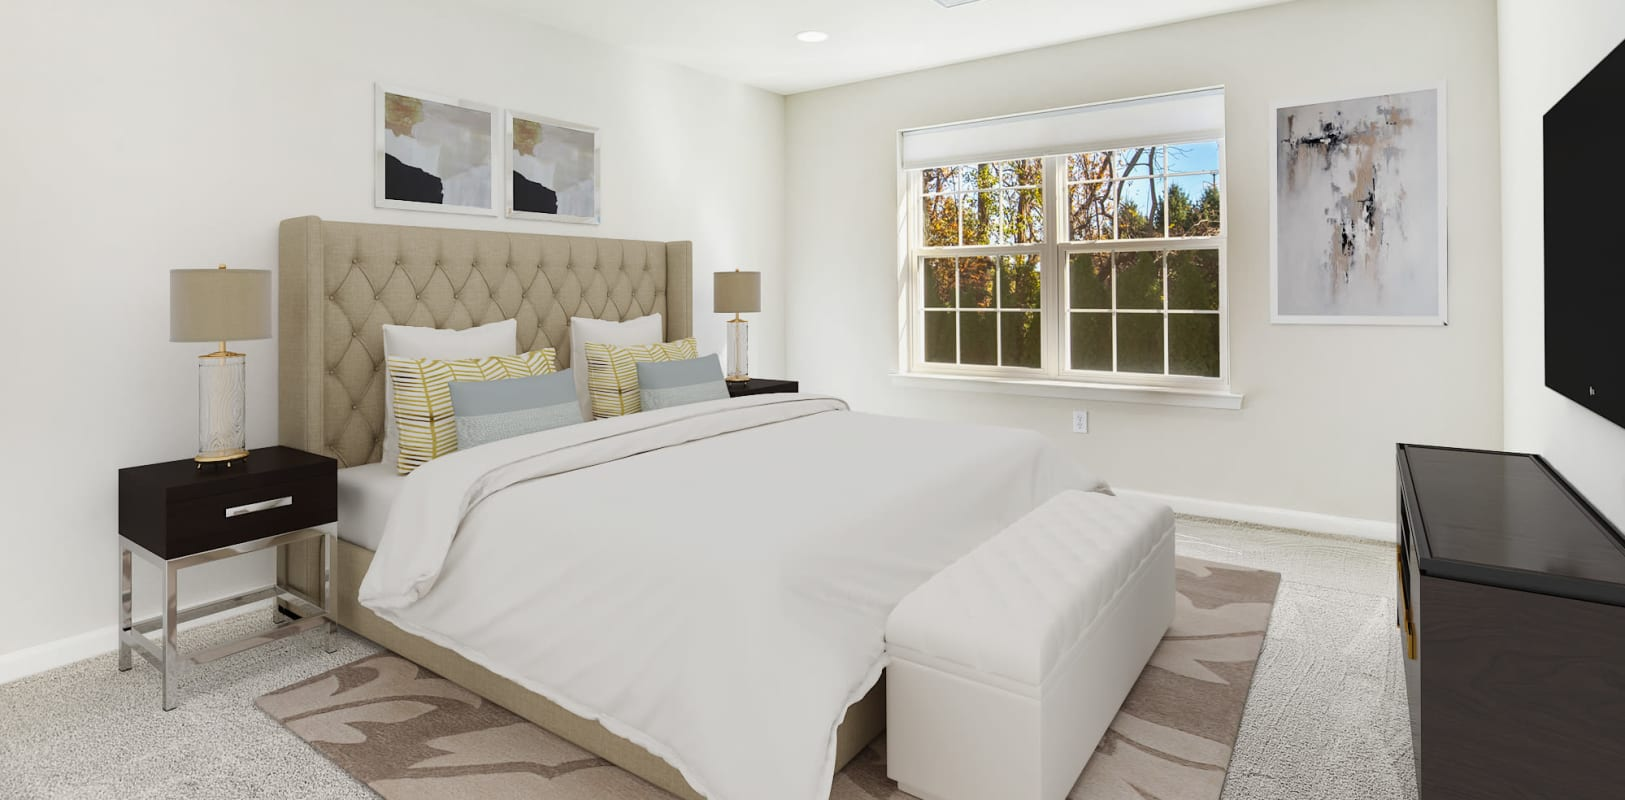 Comfortable bedroom with plush carpeting at Hanover Glen in Bethlehem, Pennsylvania